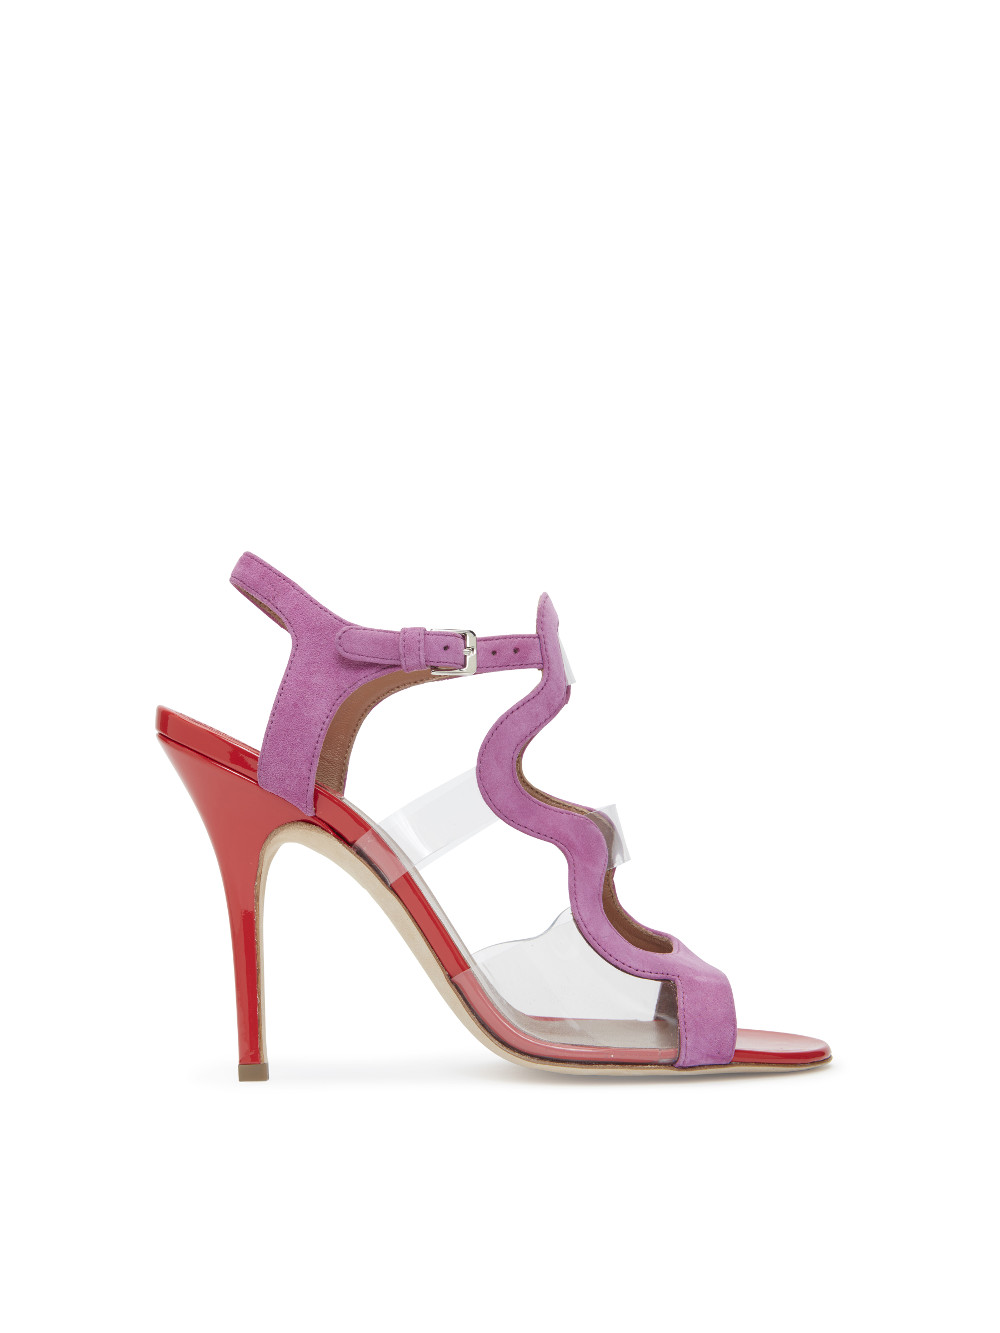 LD_SS19_Toma_Suede_Fuxia_1060.jpg